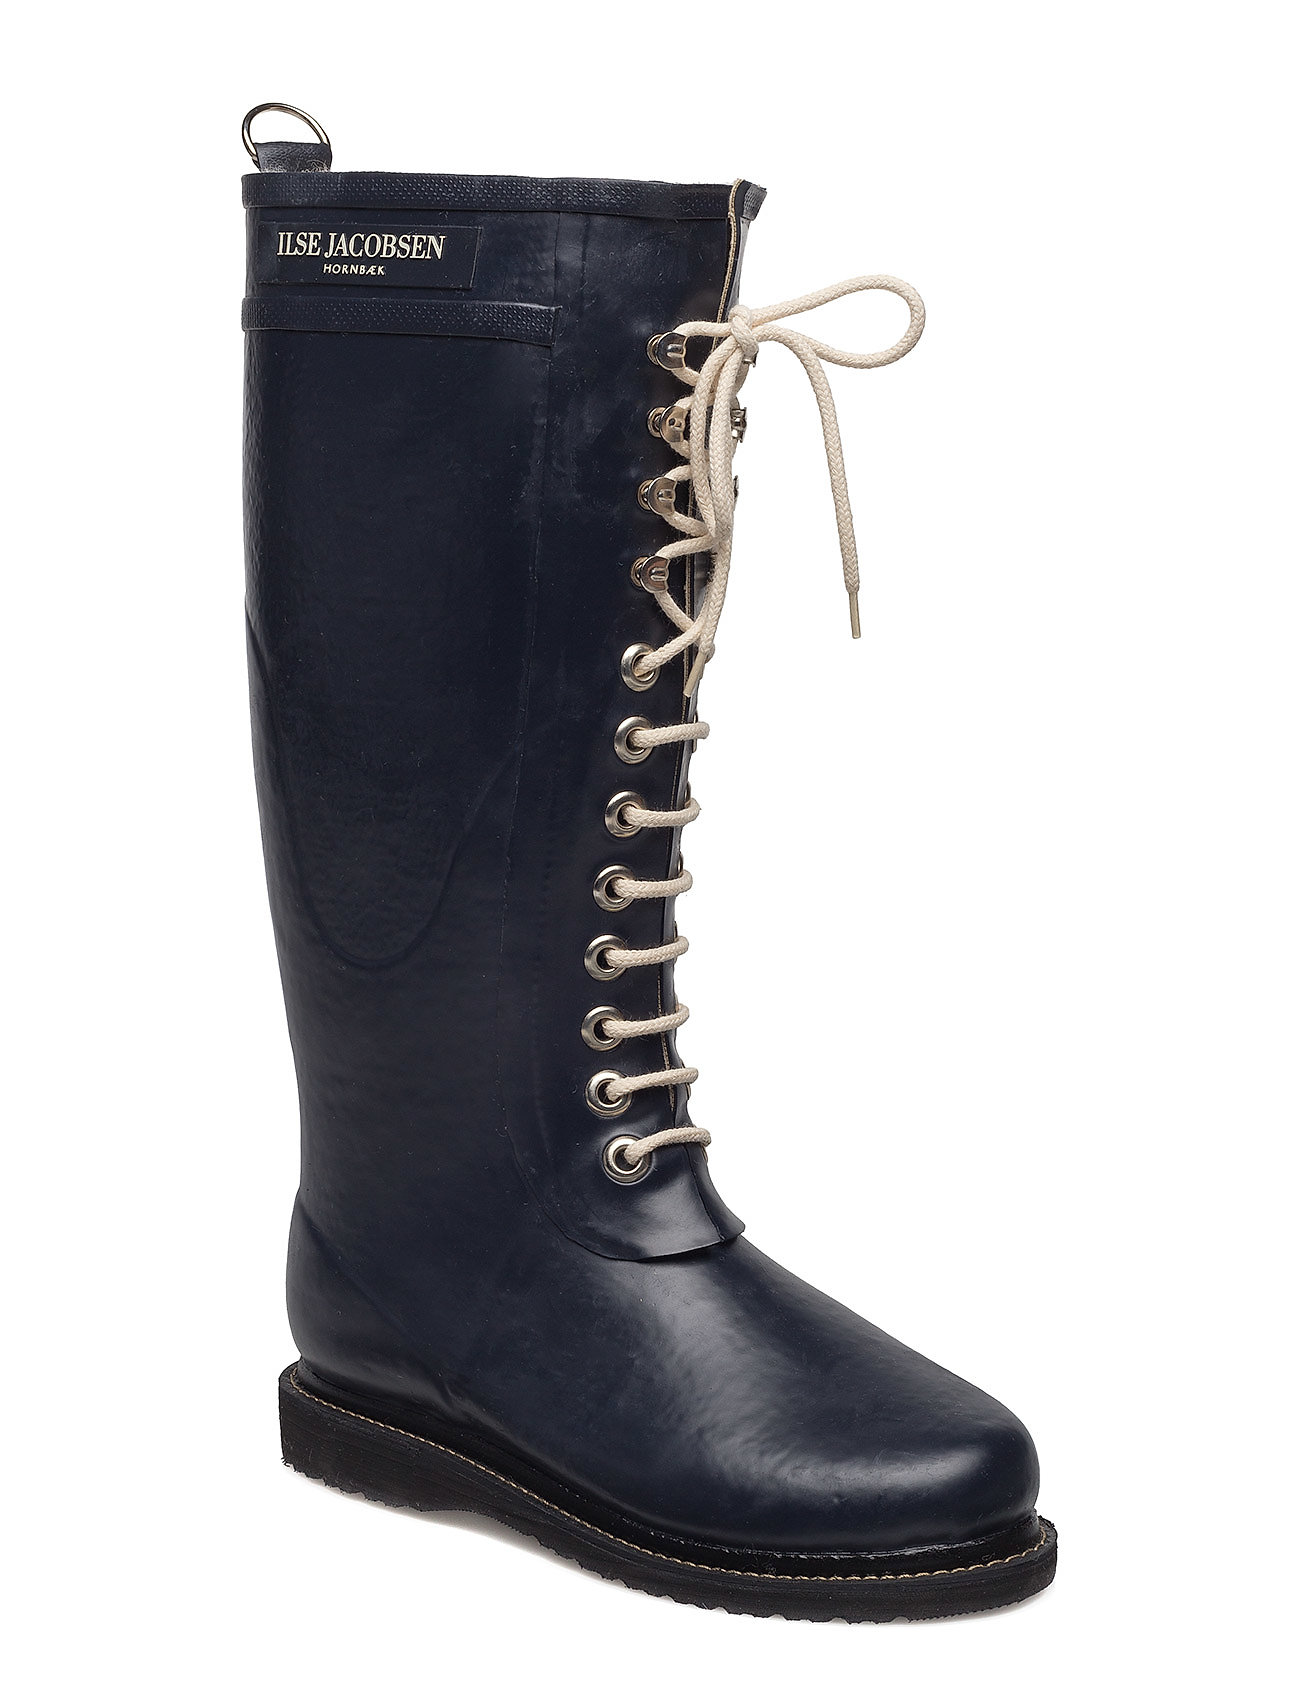 Ilse Jacobsen LONG RUBBERBOOT - DARK INDIGO